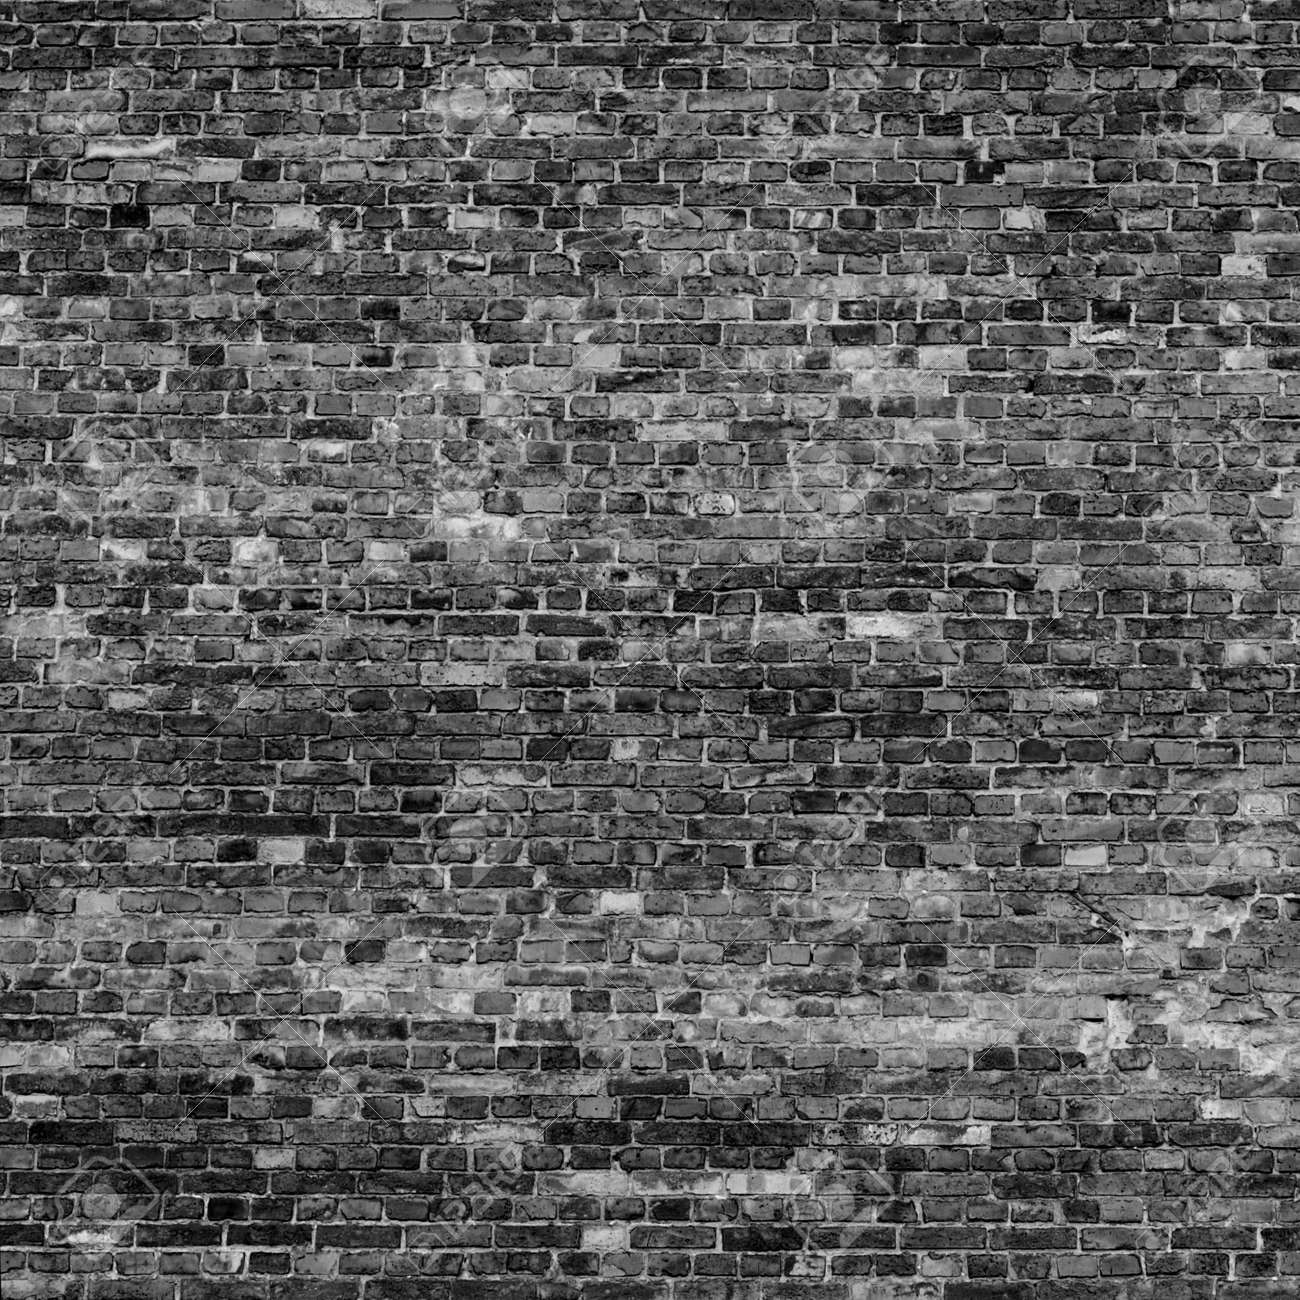 old brick wall texture background in black and white colors texture rh 123rf com black and white wall art black and white wallpaper hd